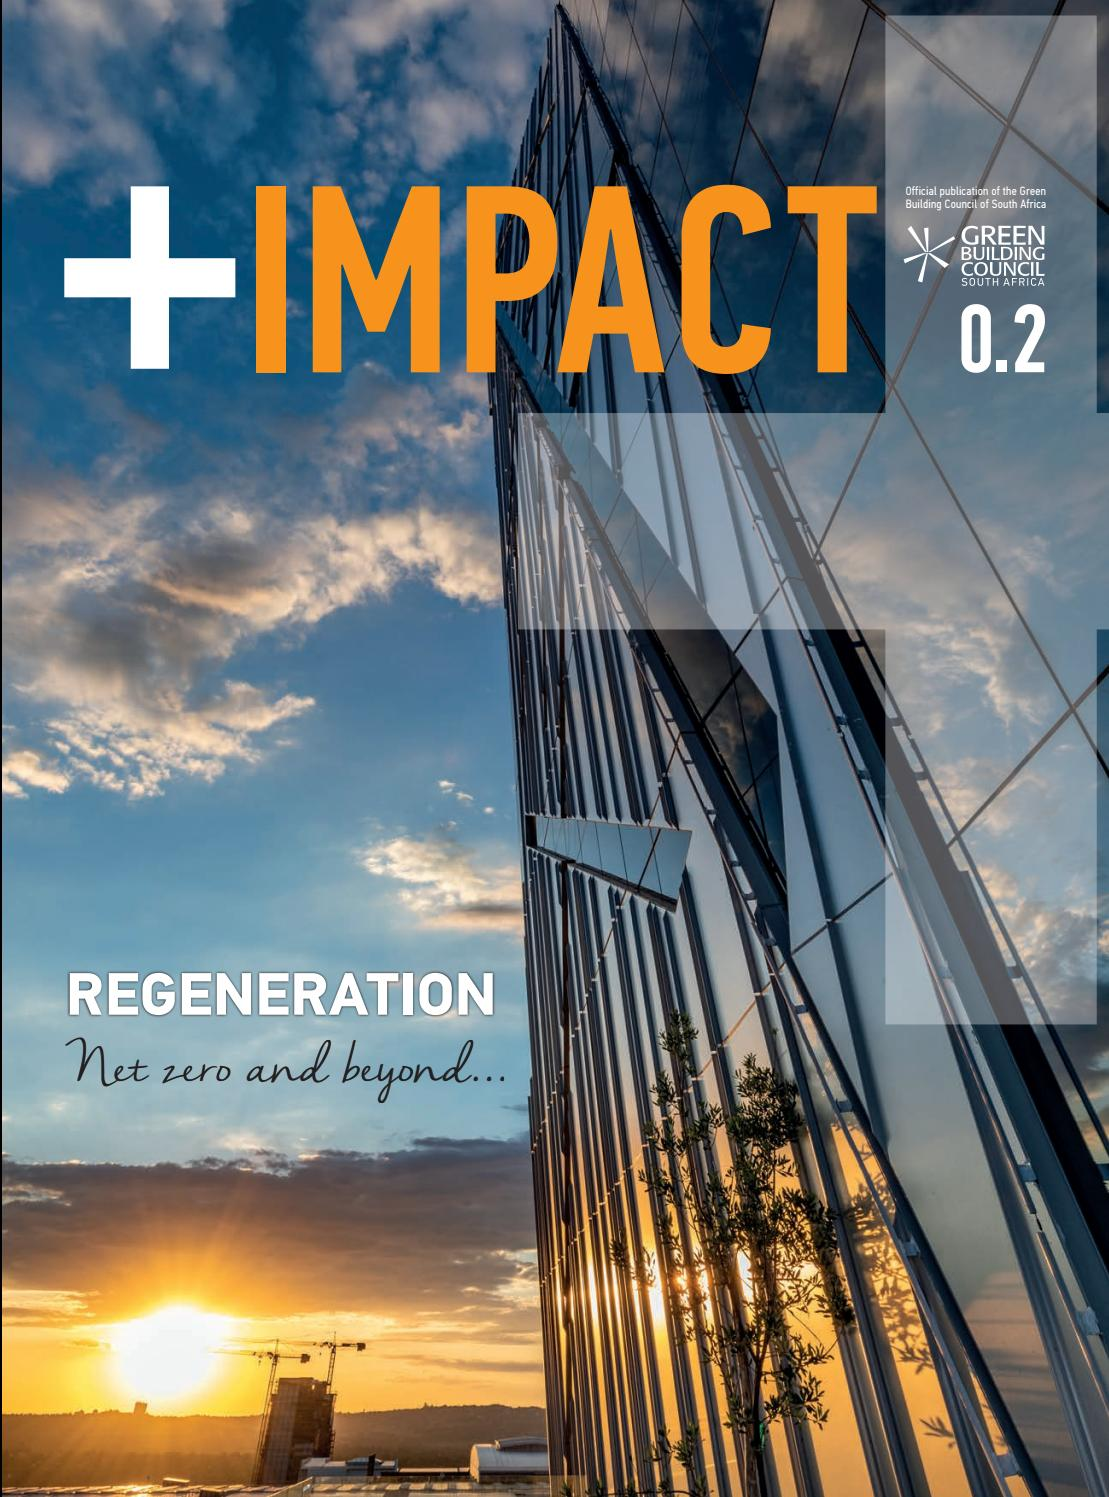 4f618fb5387 + IMPACT ISSUE 0.2 by Alive2Green - issuu